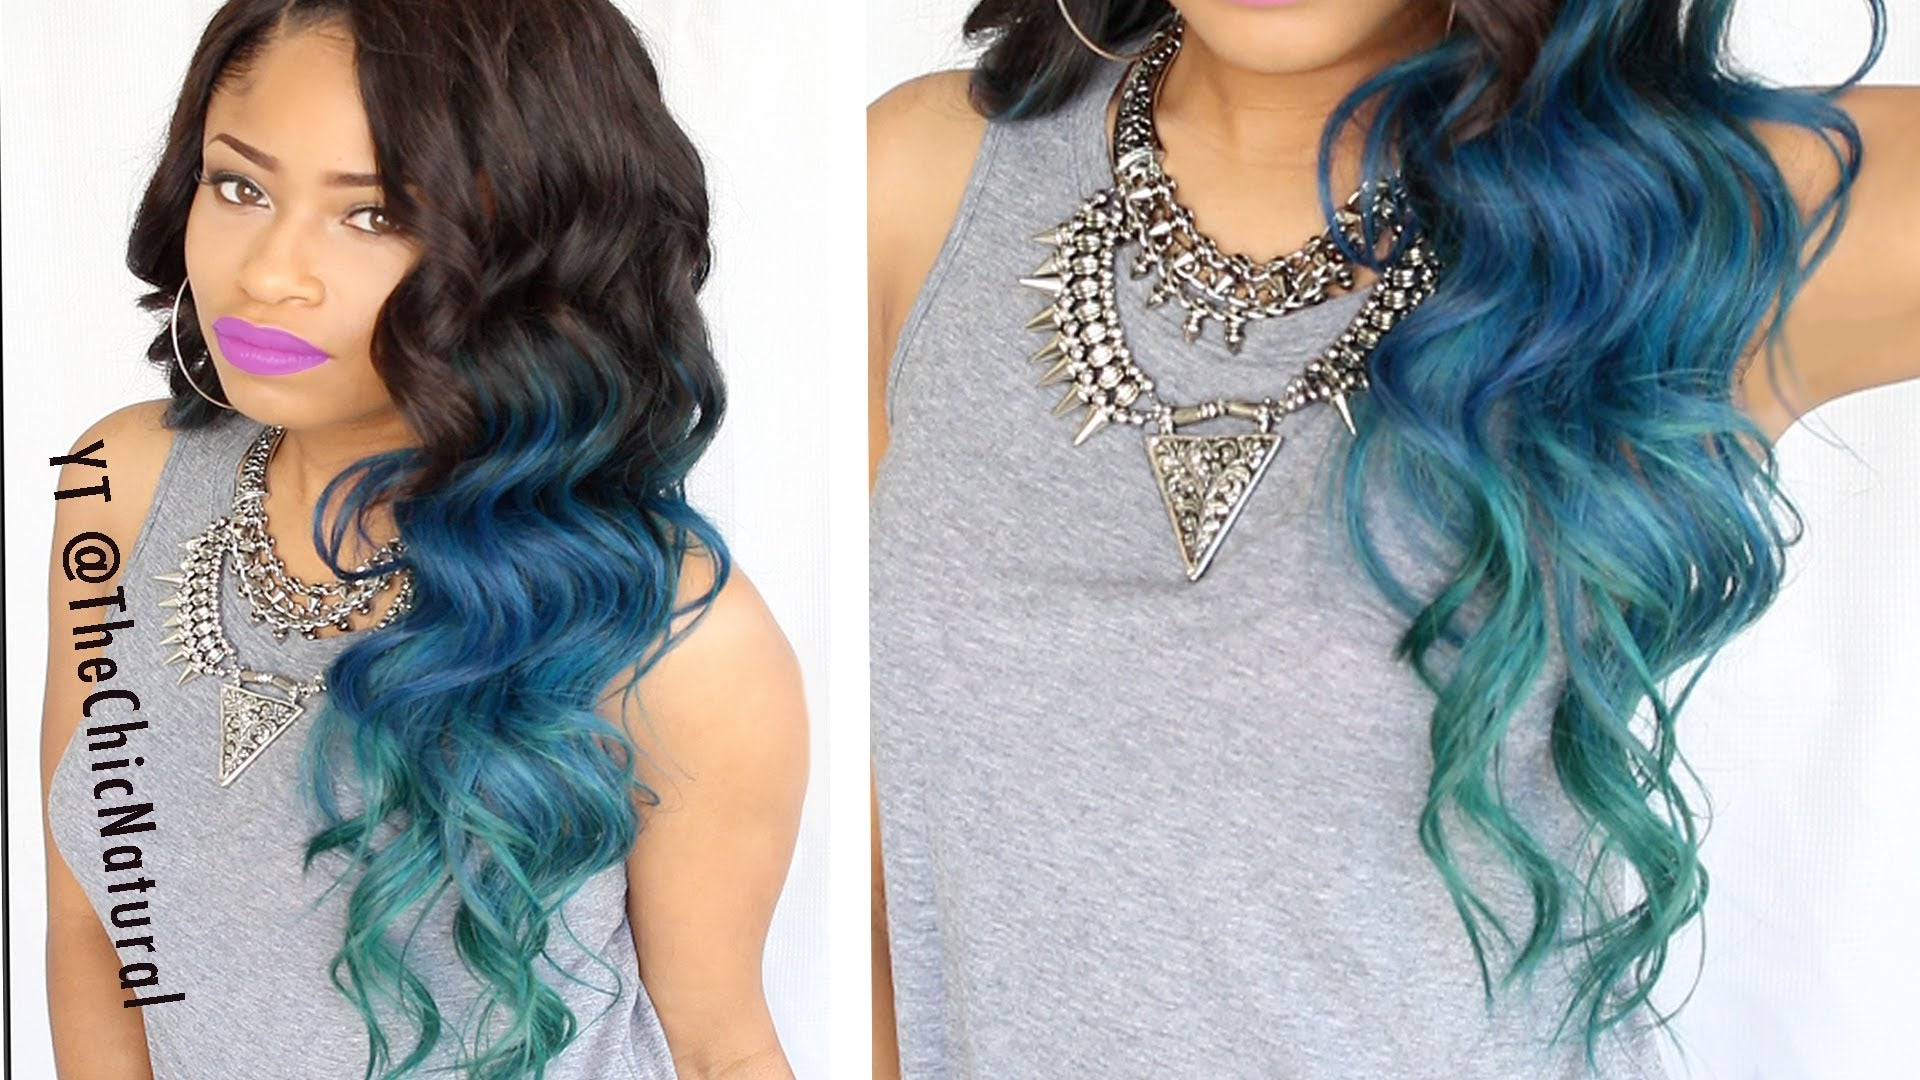 10 fun ombre hair color ideas for 2017 if youre not ready to commit to the blue consider blue clip in hair extensions to get the look without the permanence of bleach and blue hair dye pmusecretfo Gallery